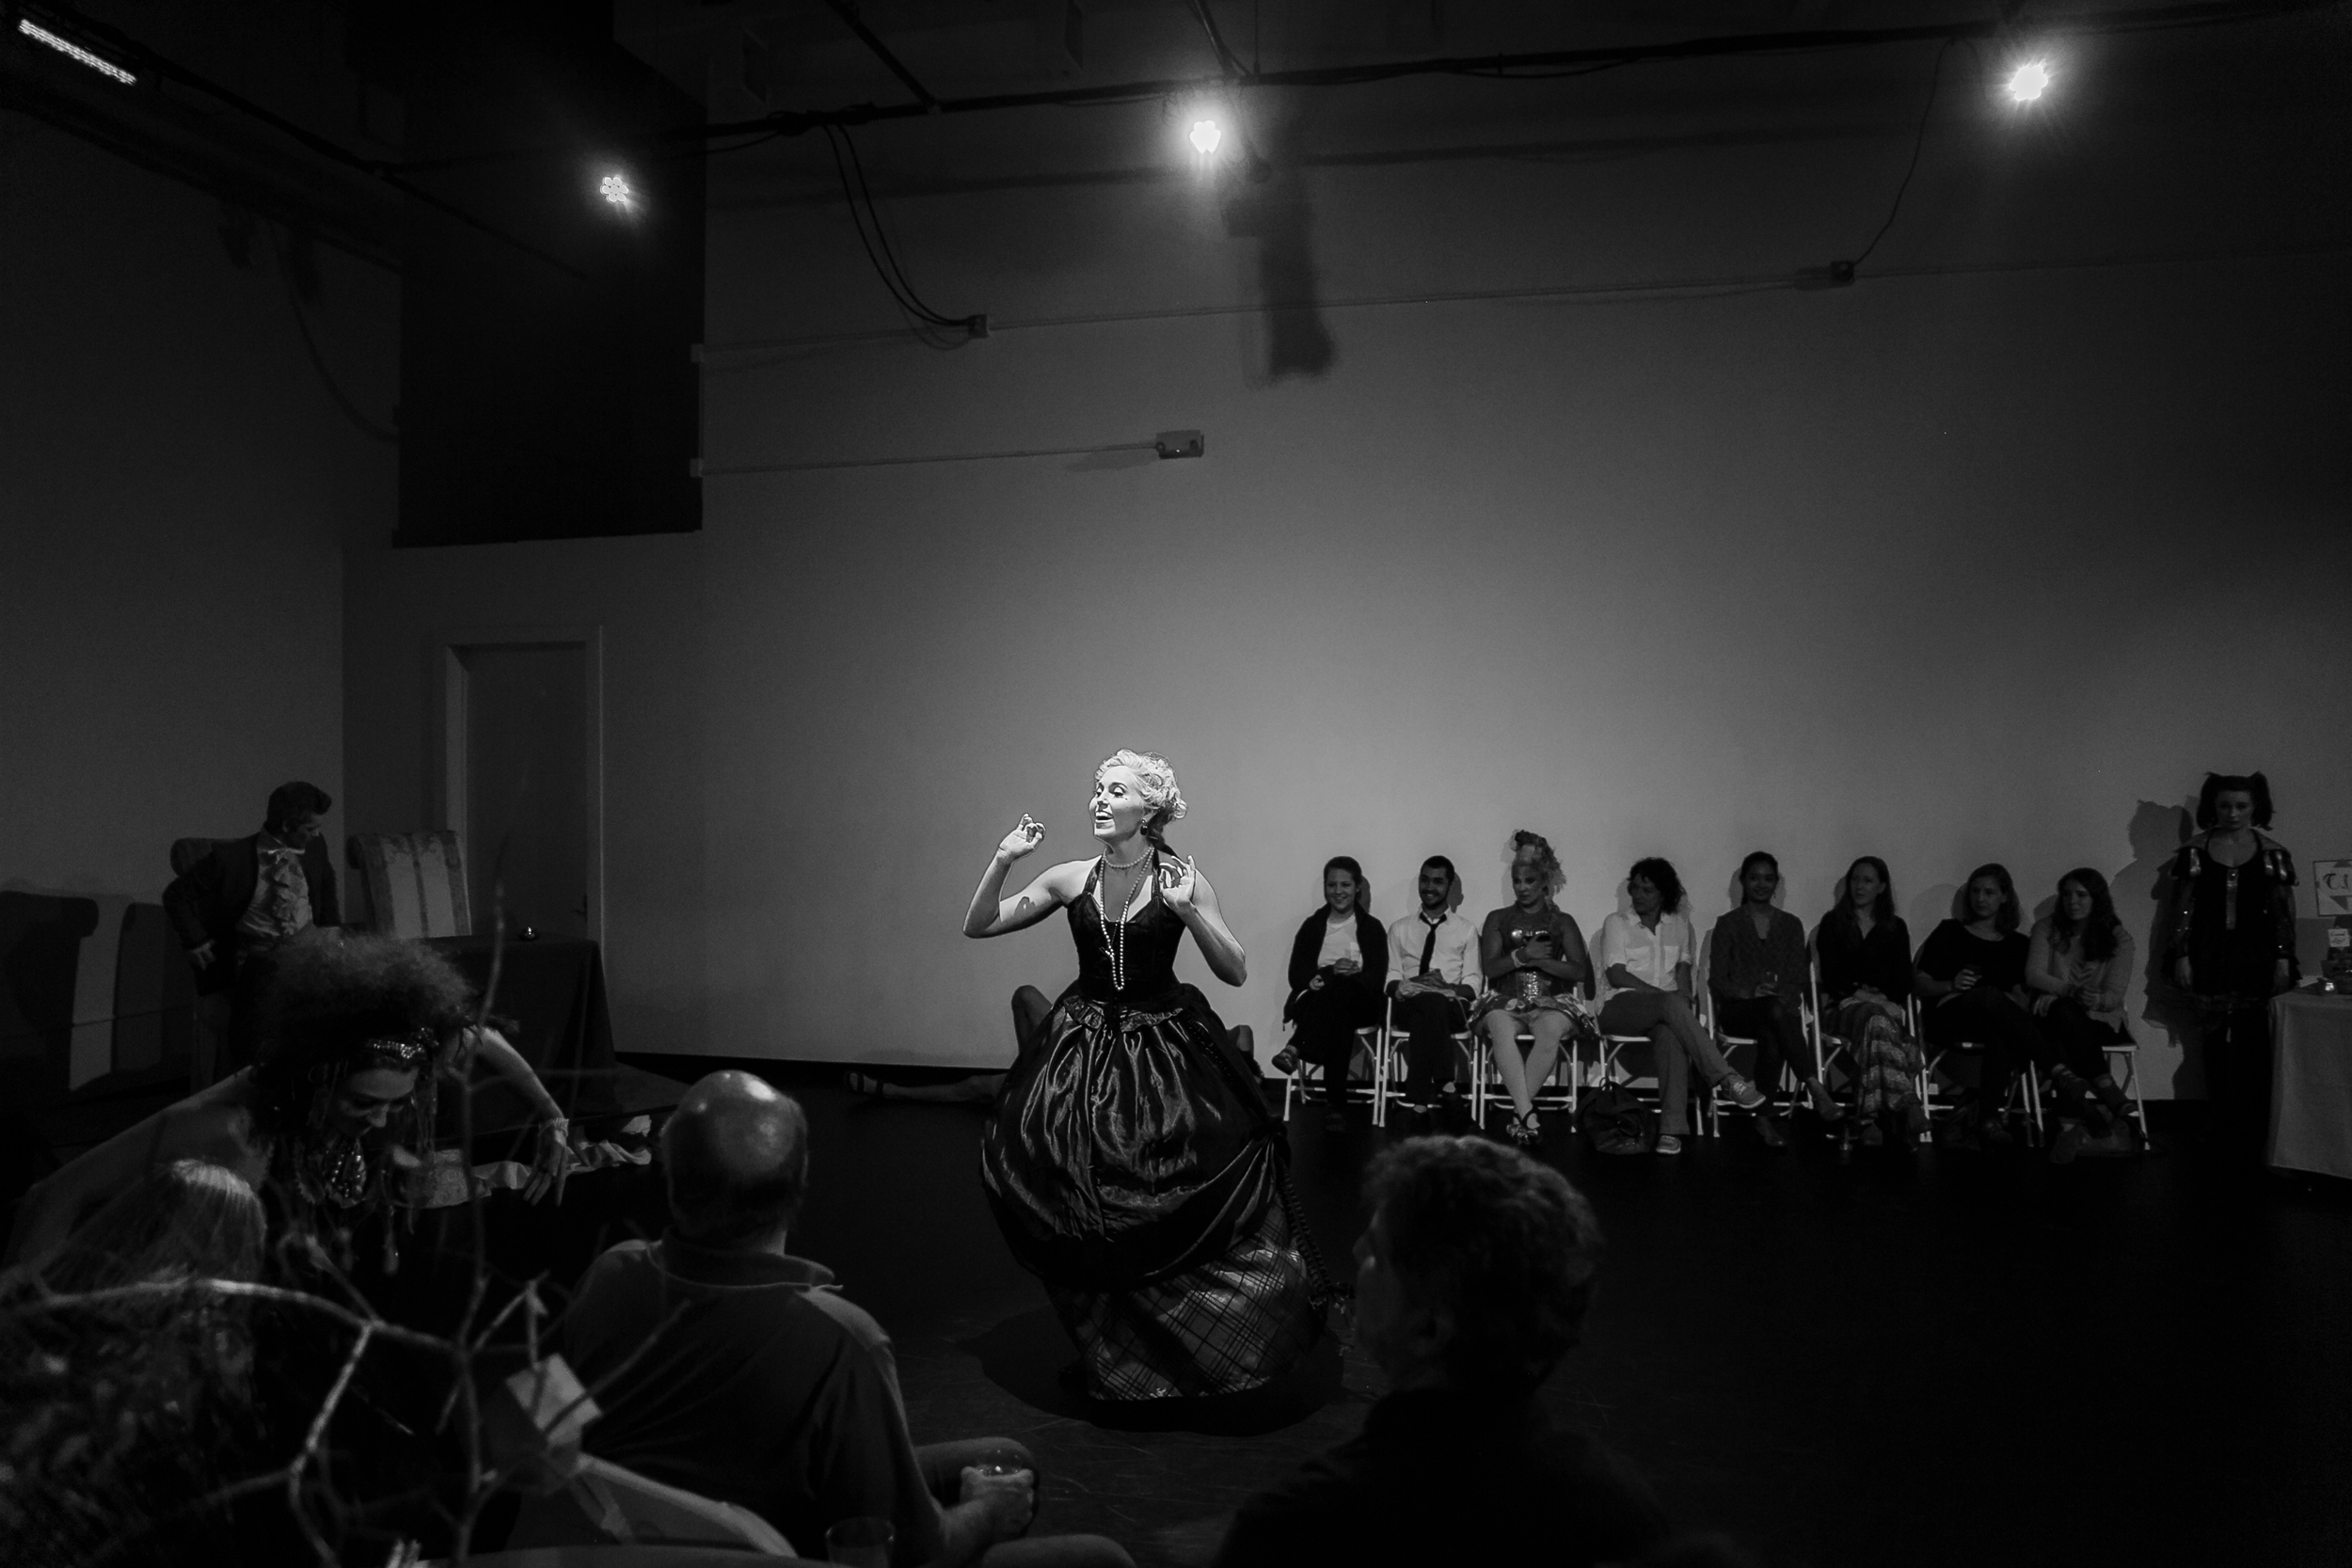 Black and white photo of actor speaking to audience at NunaMaana immersive dance theater performance